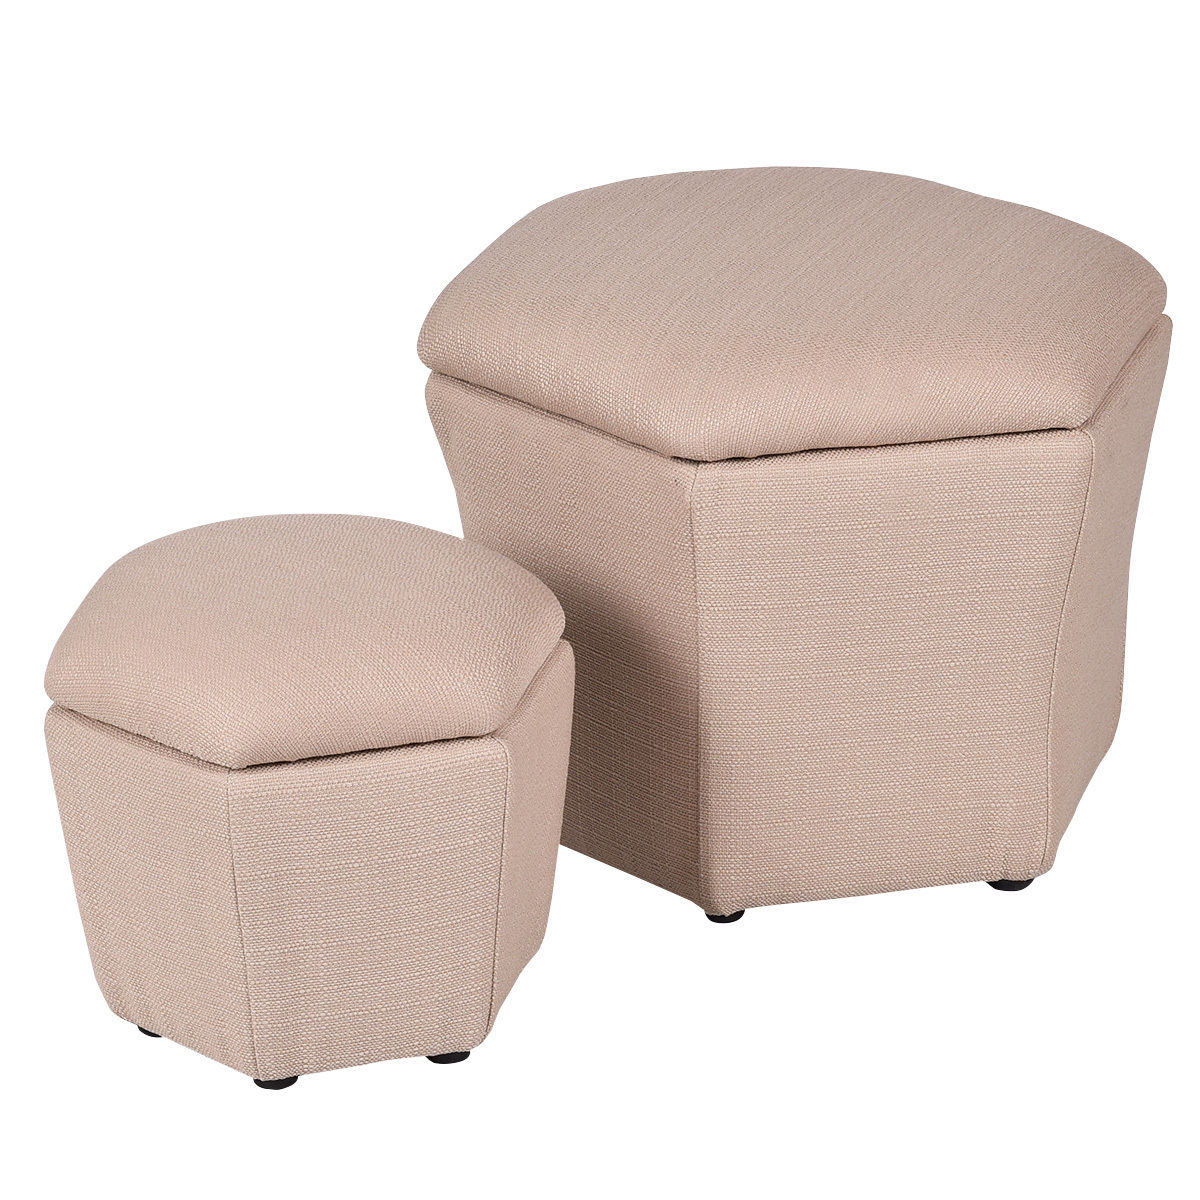 Giantex Set of 2 Ottoman Set Living Room Storage Box Seat Footstool Rest Bench Modern Ottomans Organizer HW54385